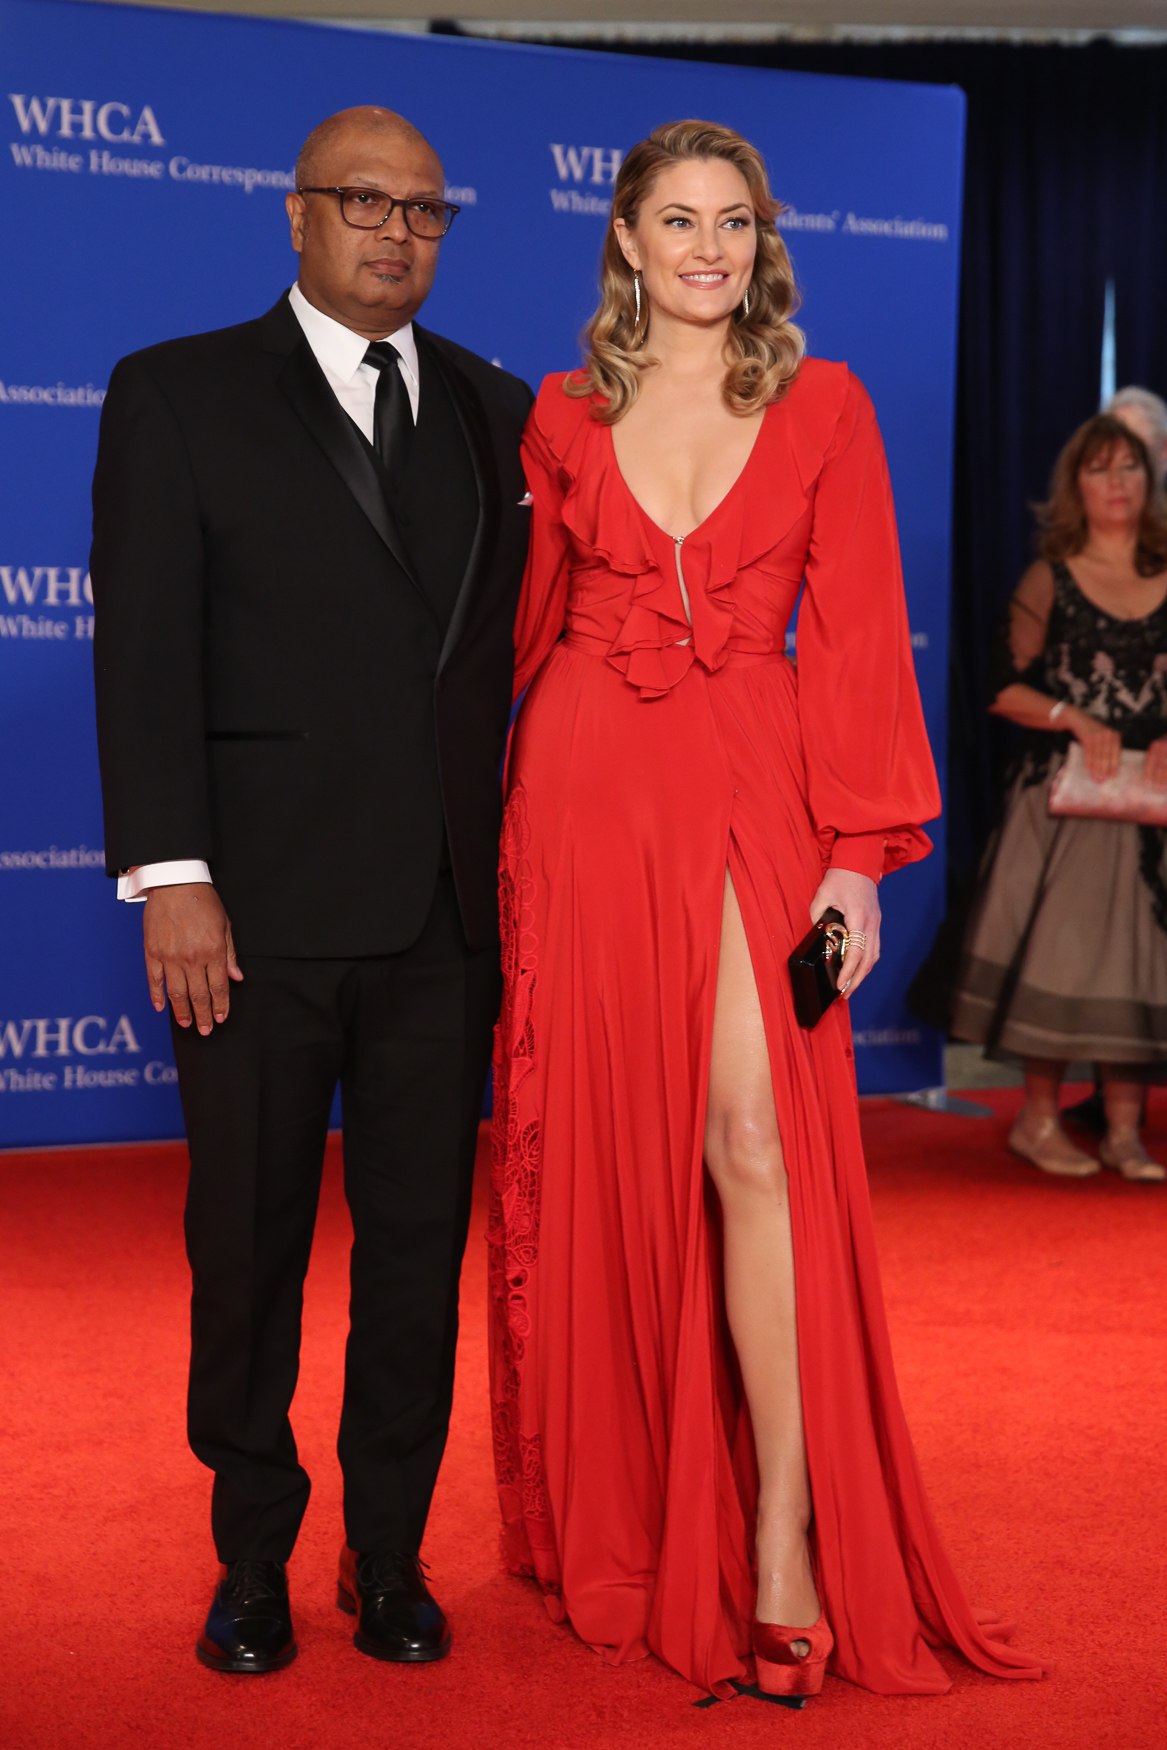 Nerd prom is back! Hundreds of notable figures in media, politics and entertainment flocked to the Washington Hilton for the annual White House Correspondents' Dinner.{ } Although the president was absent, the crowds made a significant rebound compared to last year. Here's what the red carpet looked like. (Amanda Andrade-Rhoades/DC Refined)